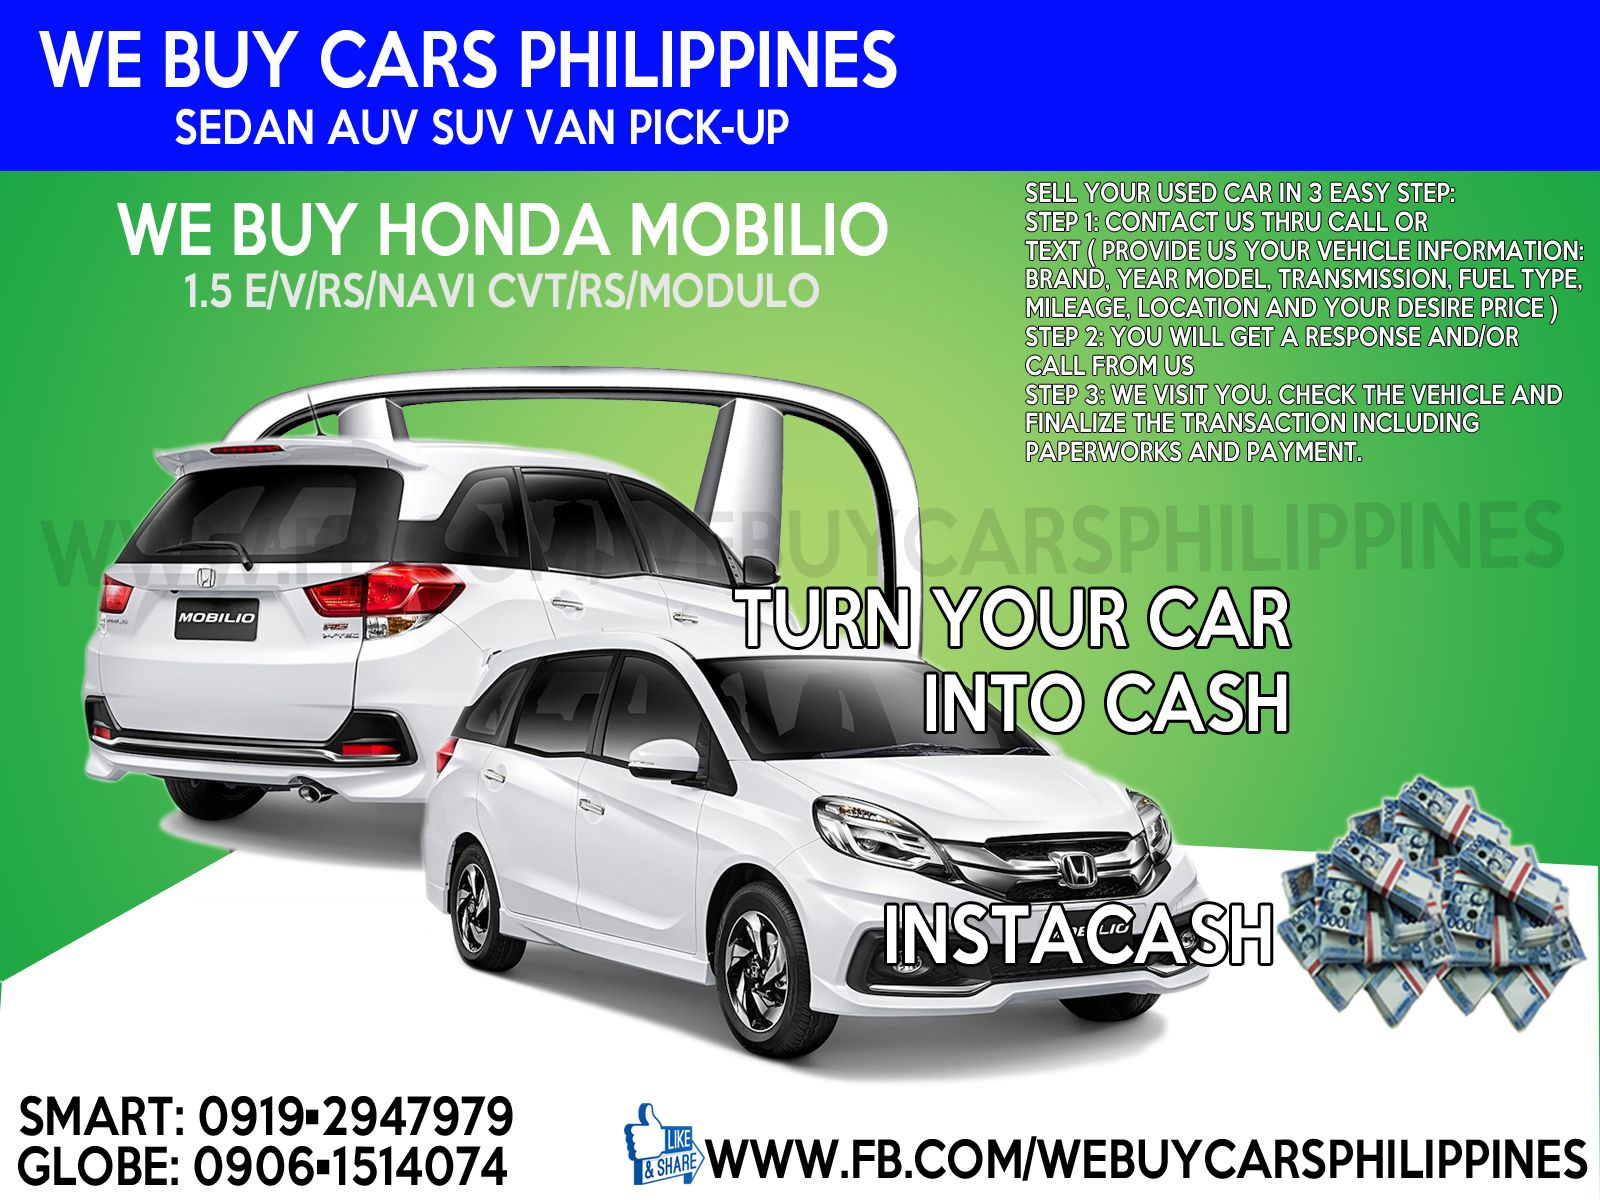 WE BUY USED HONDA MOBILIO PHILIPPINES Mobilio 1.5 E MT Mobilio 1.5 ...